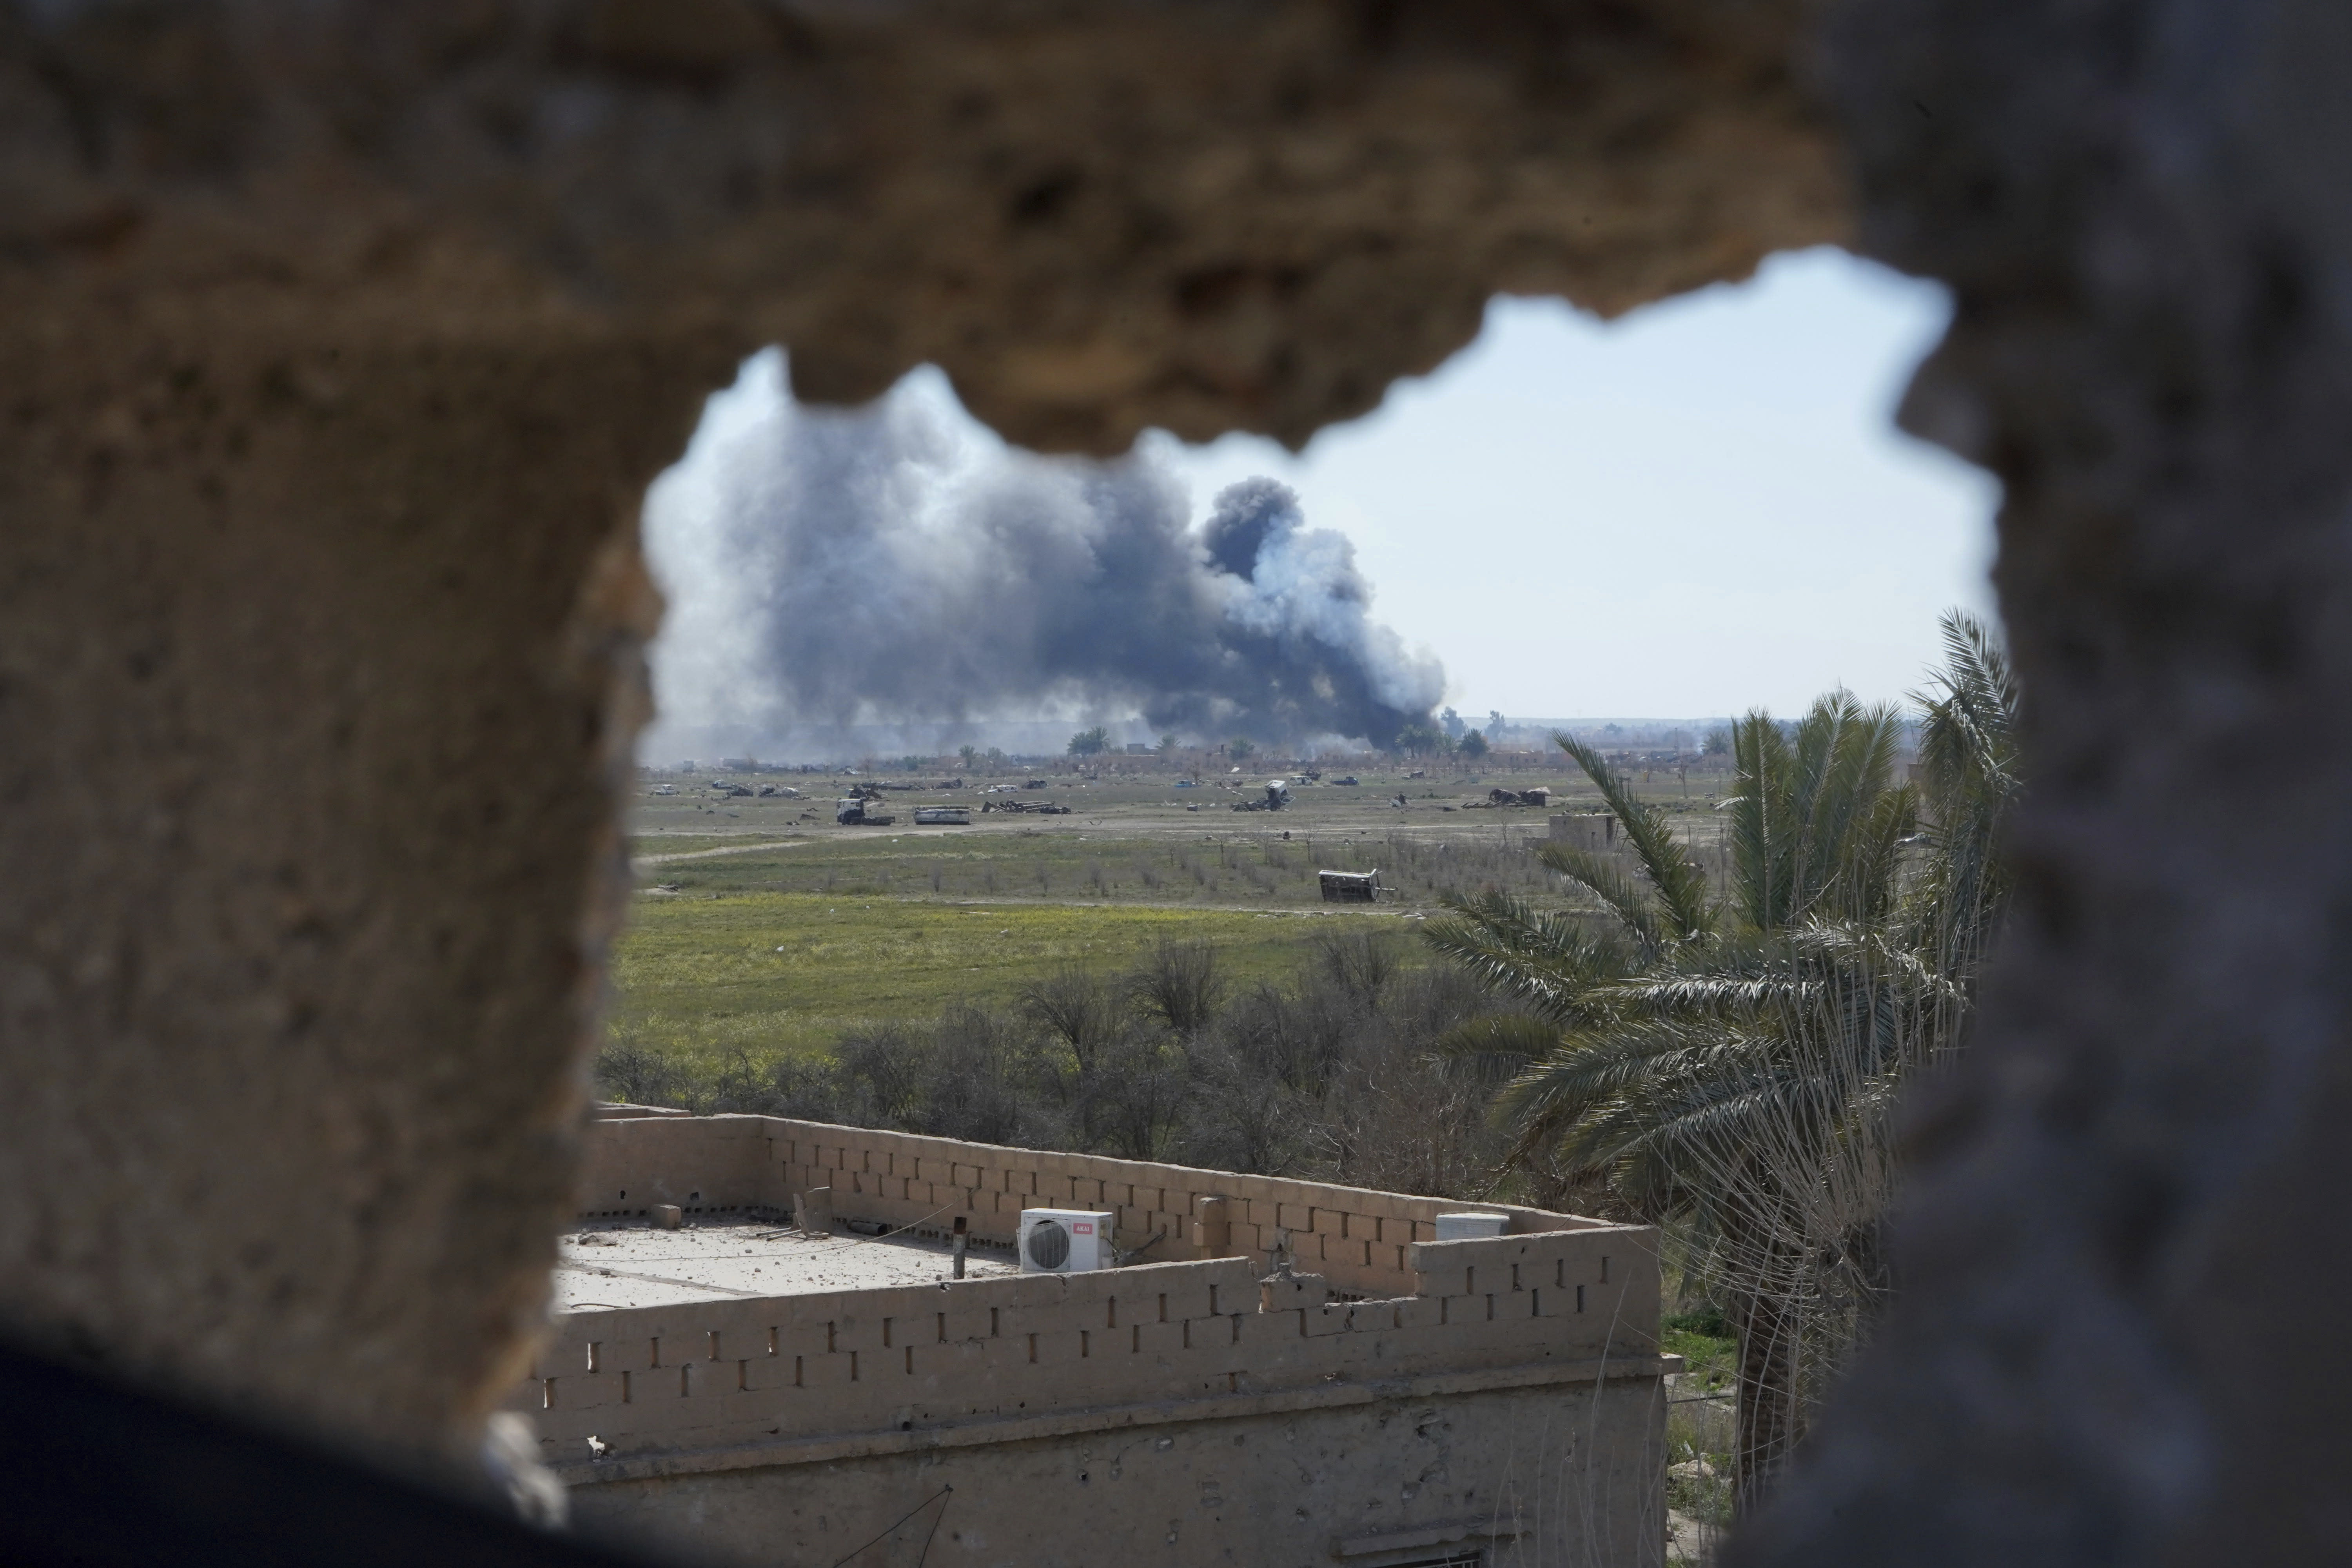 Columns of black smoke billow from the last small piece of territory held by Islamic State militants as U.S. backed fighters pounded the area with artillery fire and occasional airstrikes in Baghouz, Syria, Sunday, March 3, 2019. (AP Photo/Andrea Rosa)